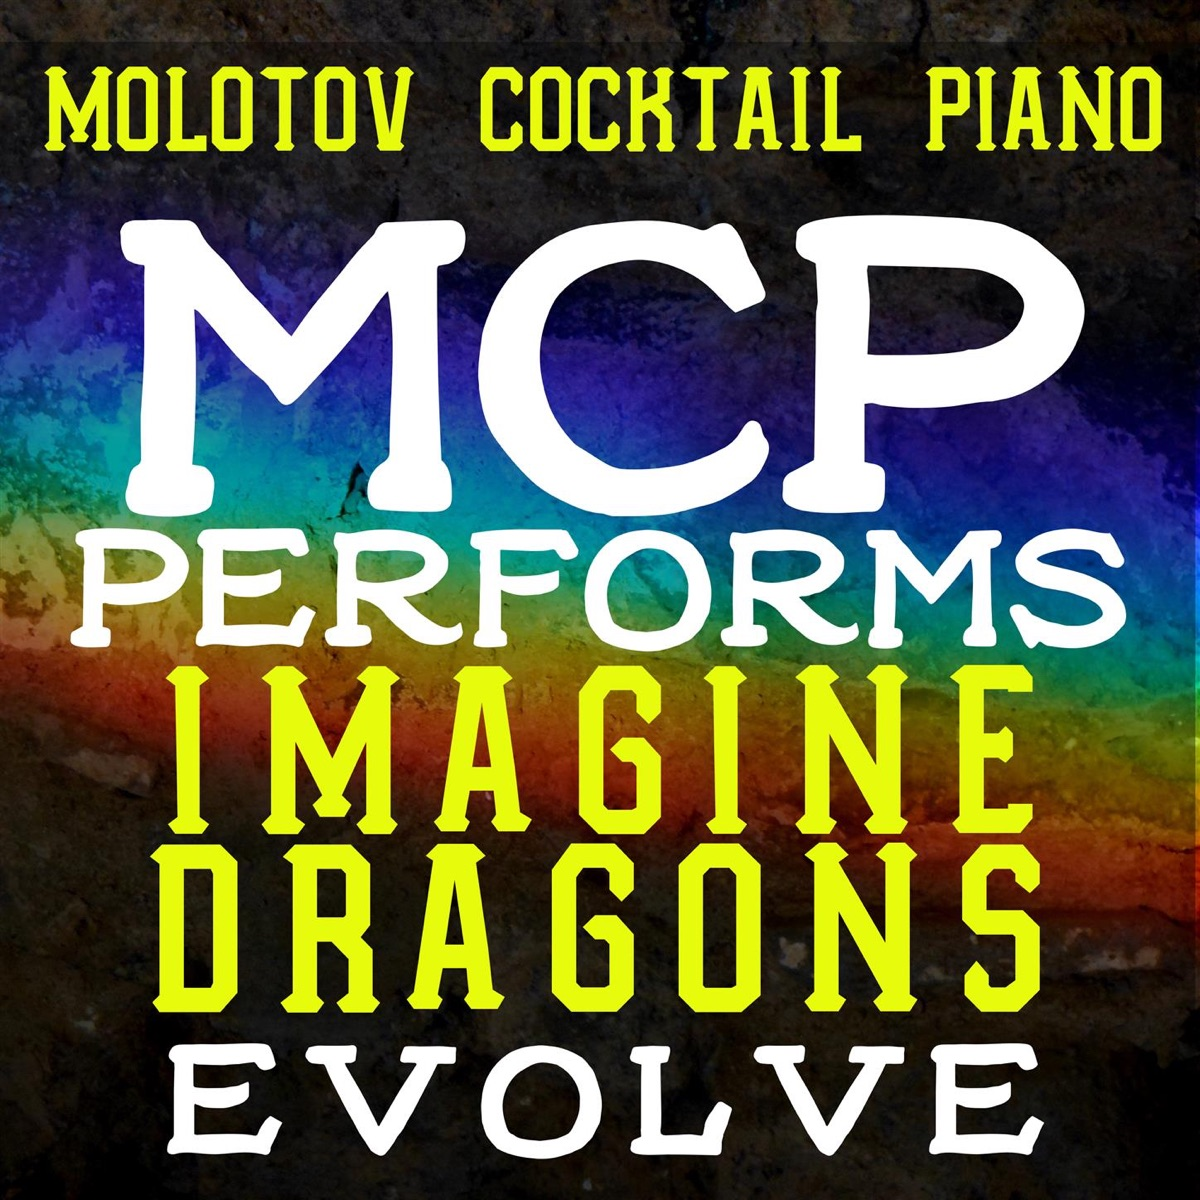 MCP Performs Imagine Dragons Evolve Instrumental Molotov Cocktail Piano CD cover